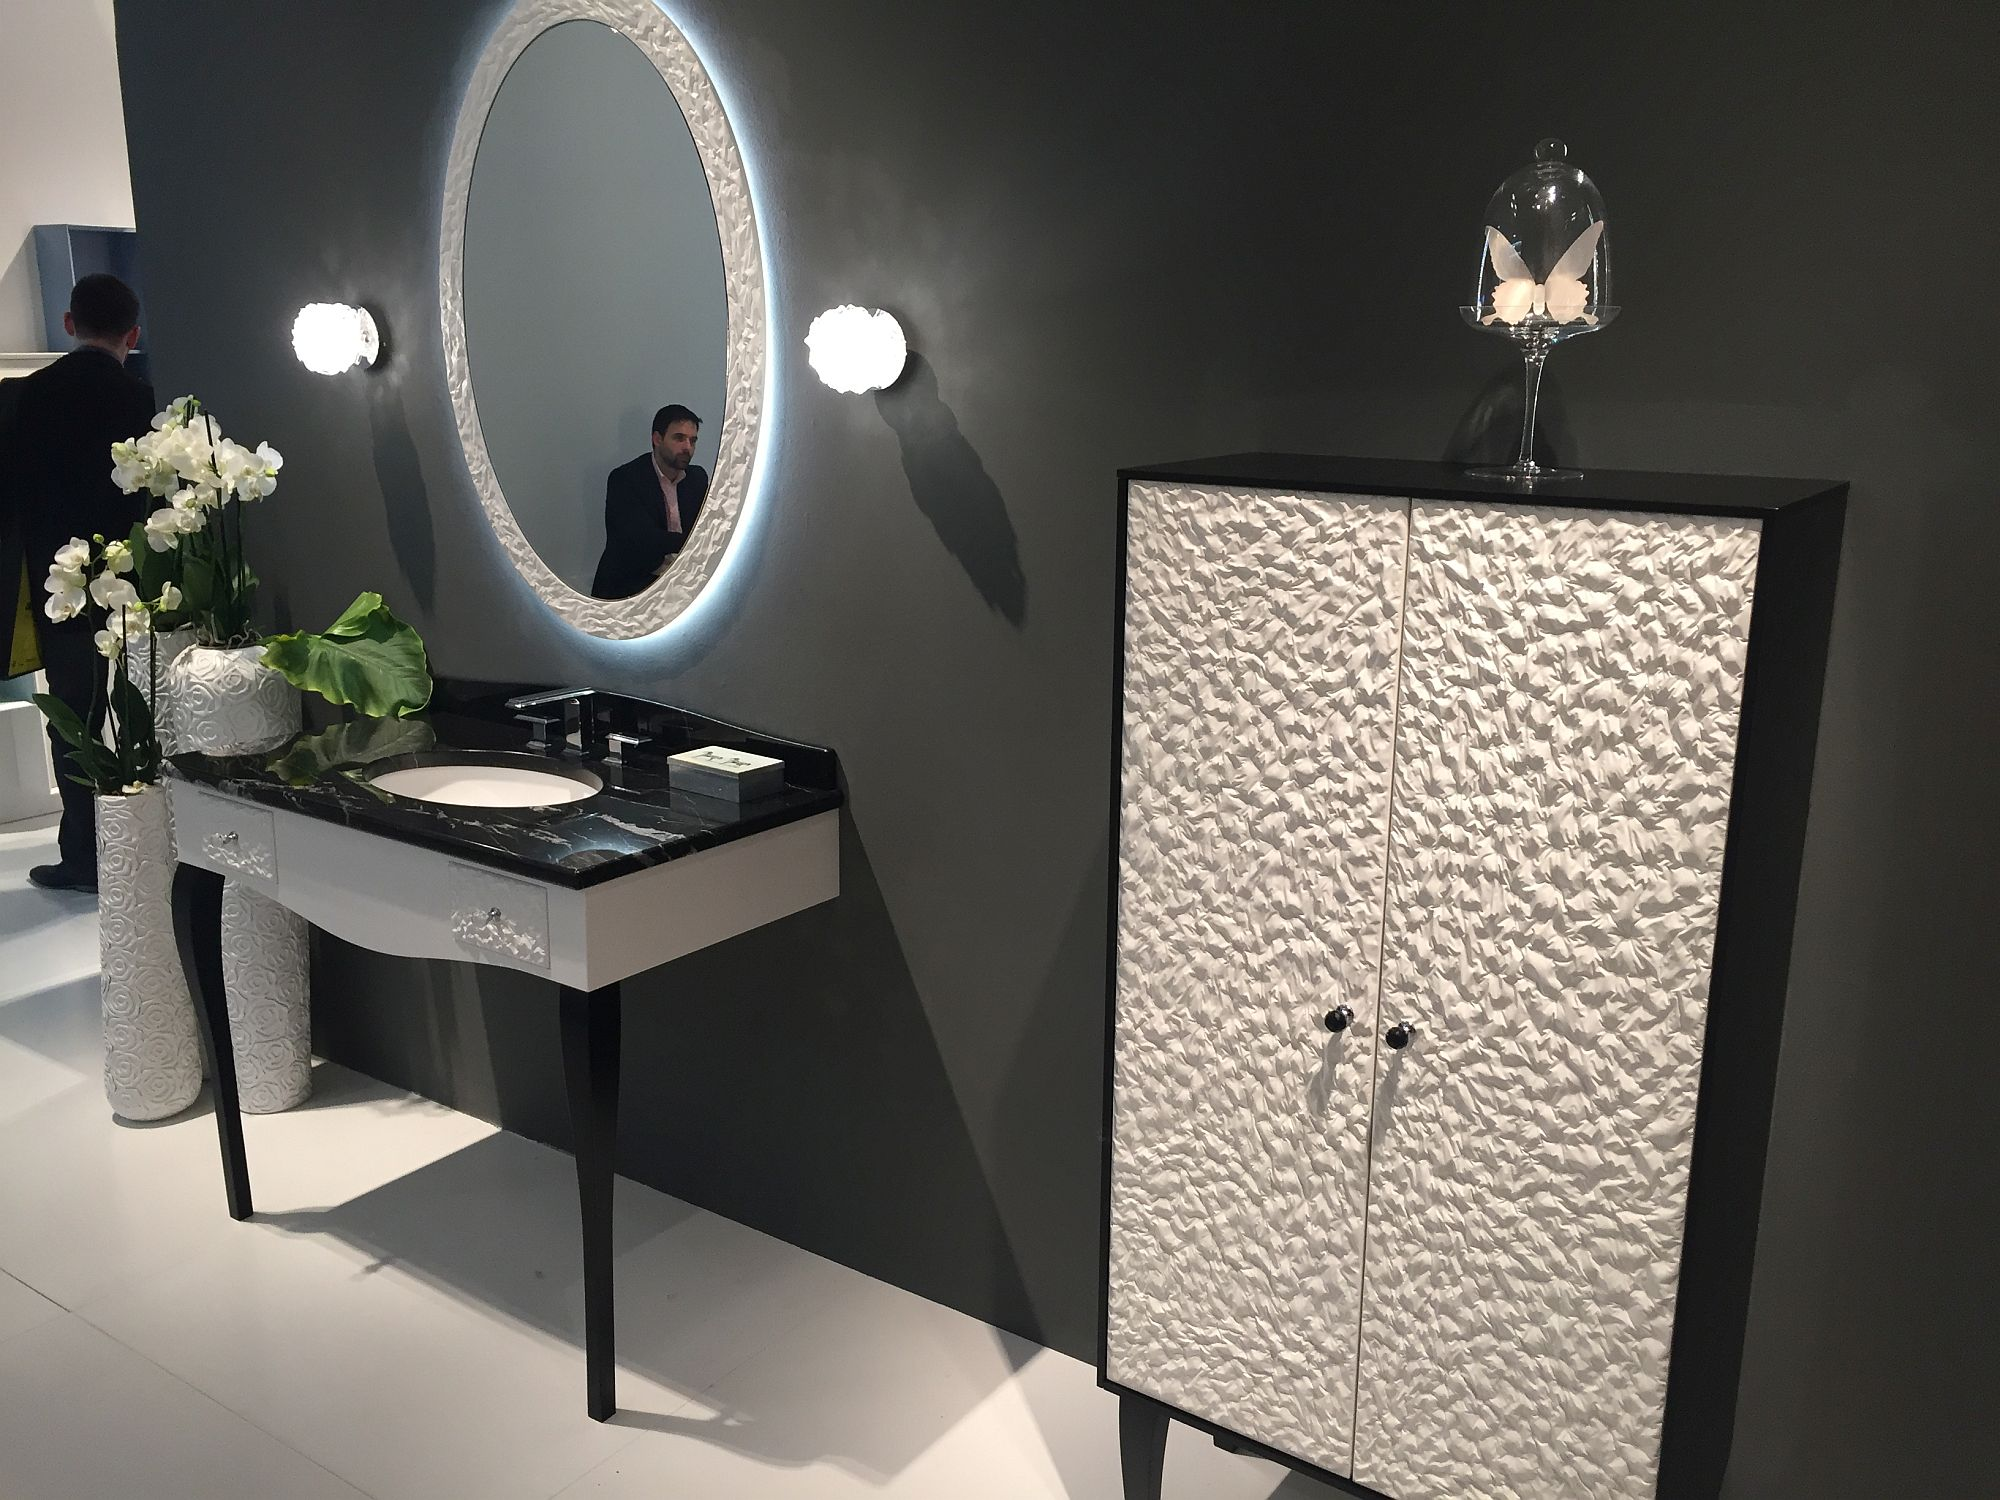 Art deco bathroom with a sink and mirror and matching vanity